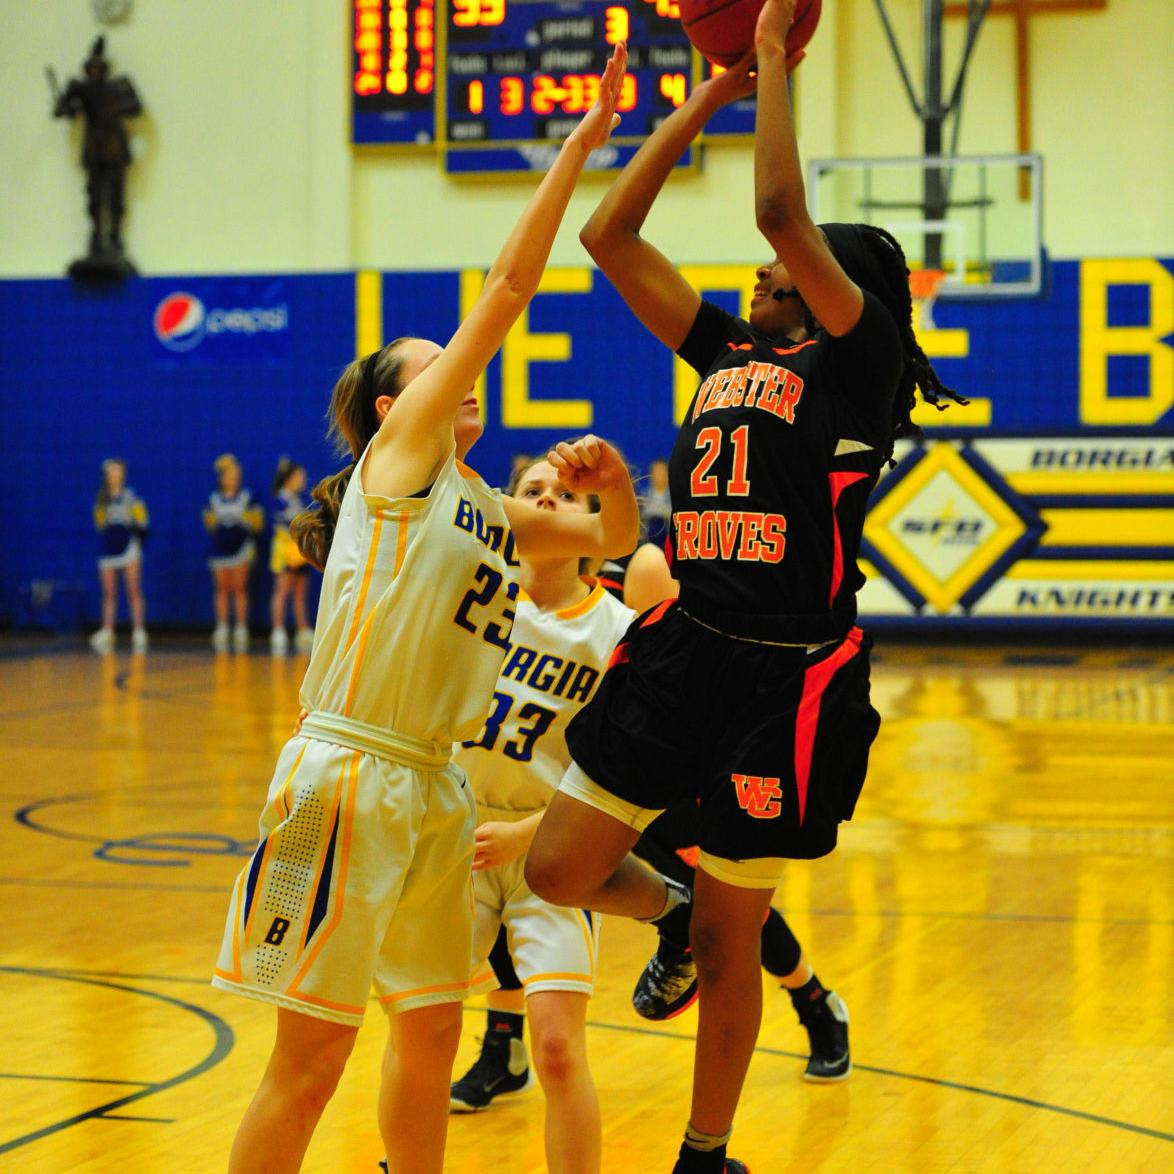 Girls Basketball — Borgia vs. Webster Groves